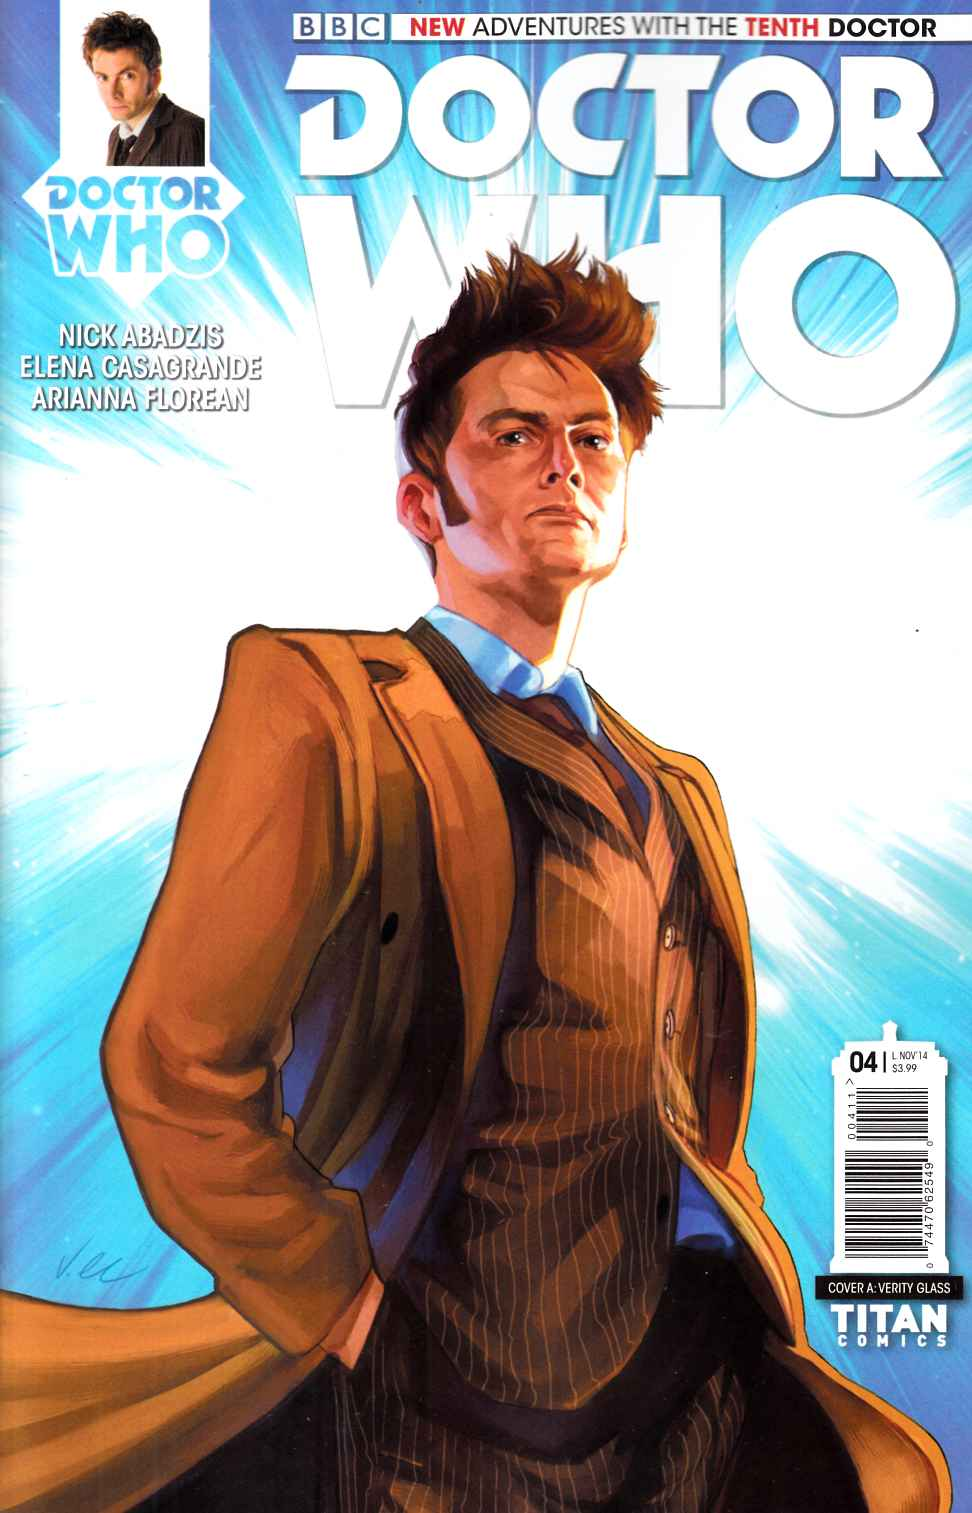 Doctor Who 10th Doctor #4 [Titan Comic]